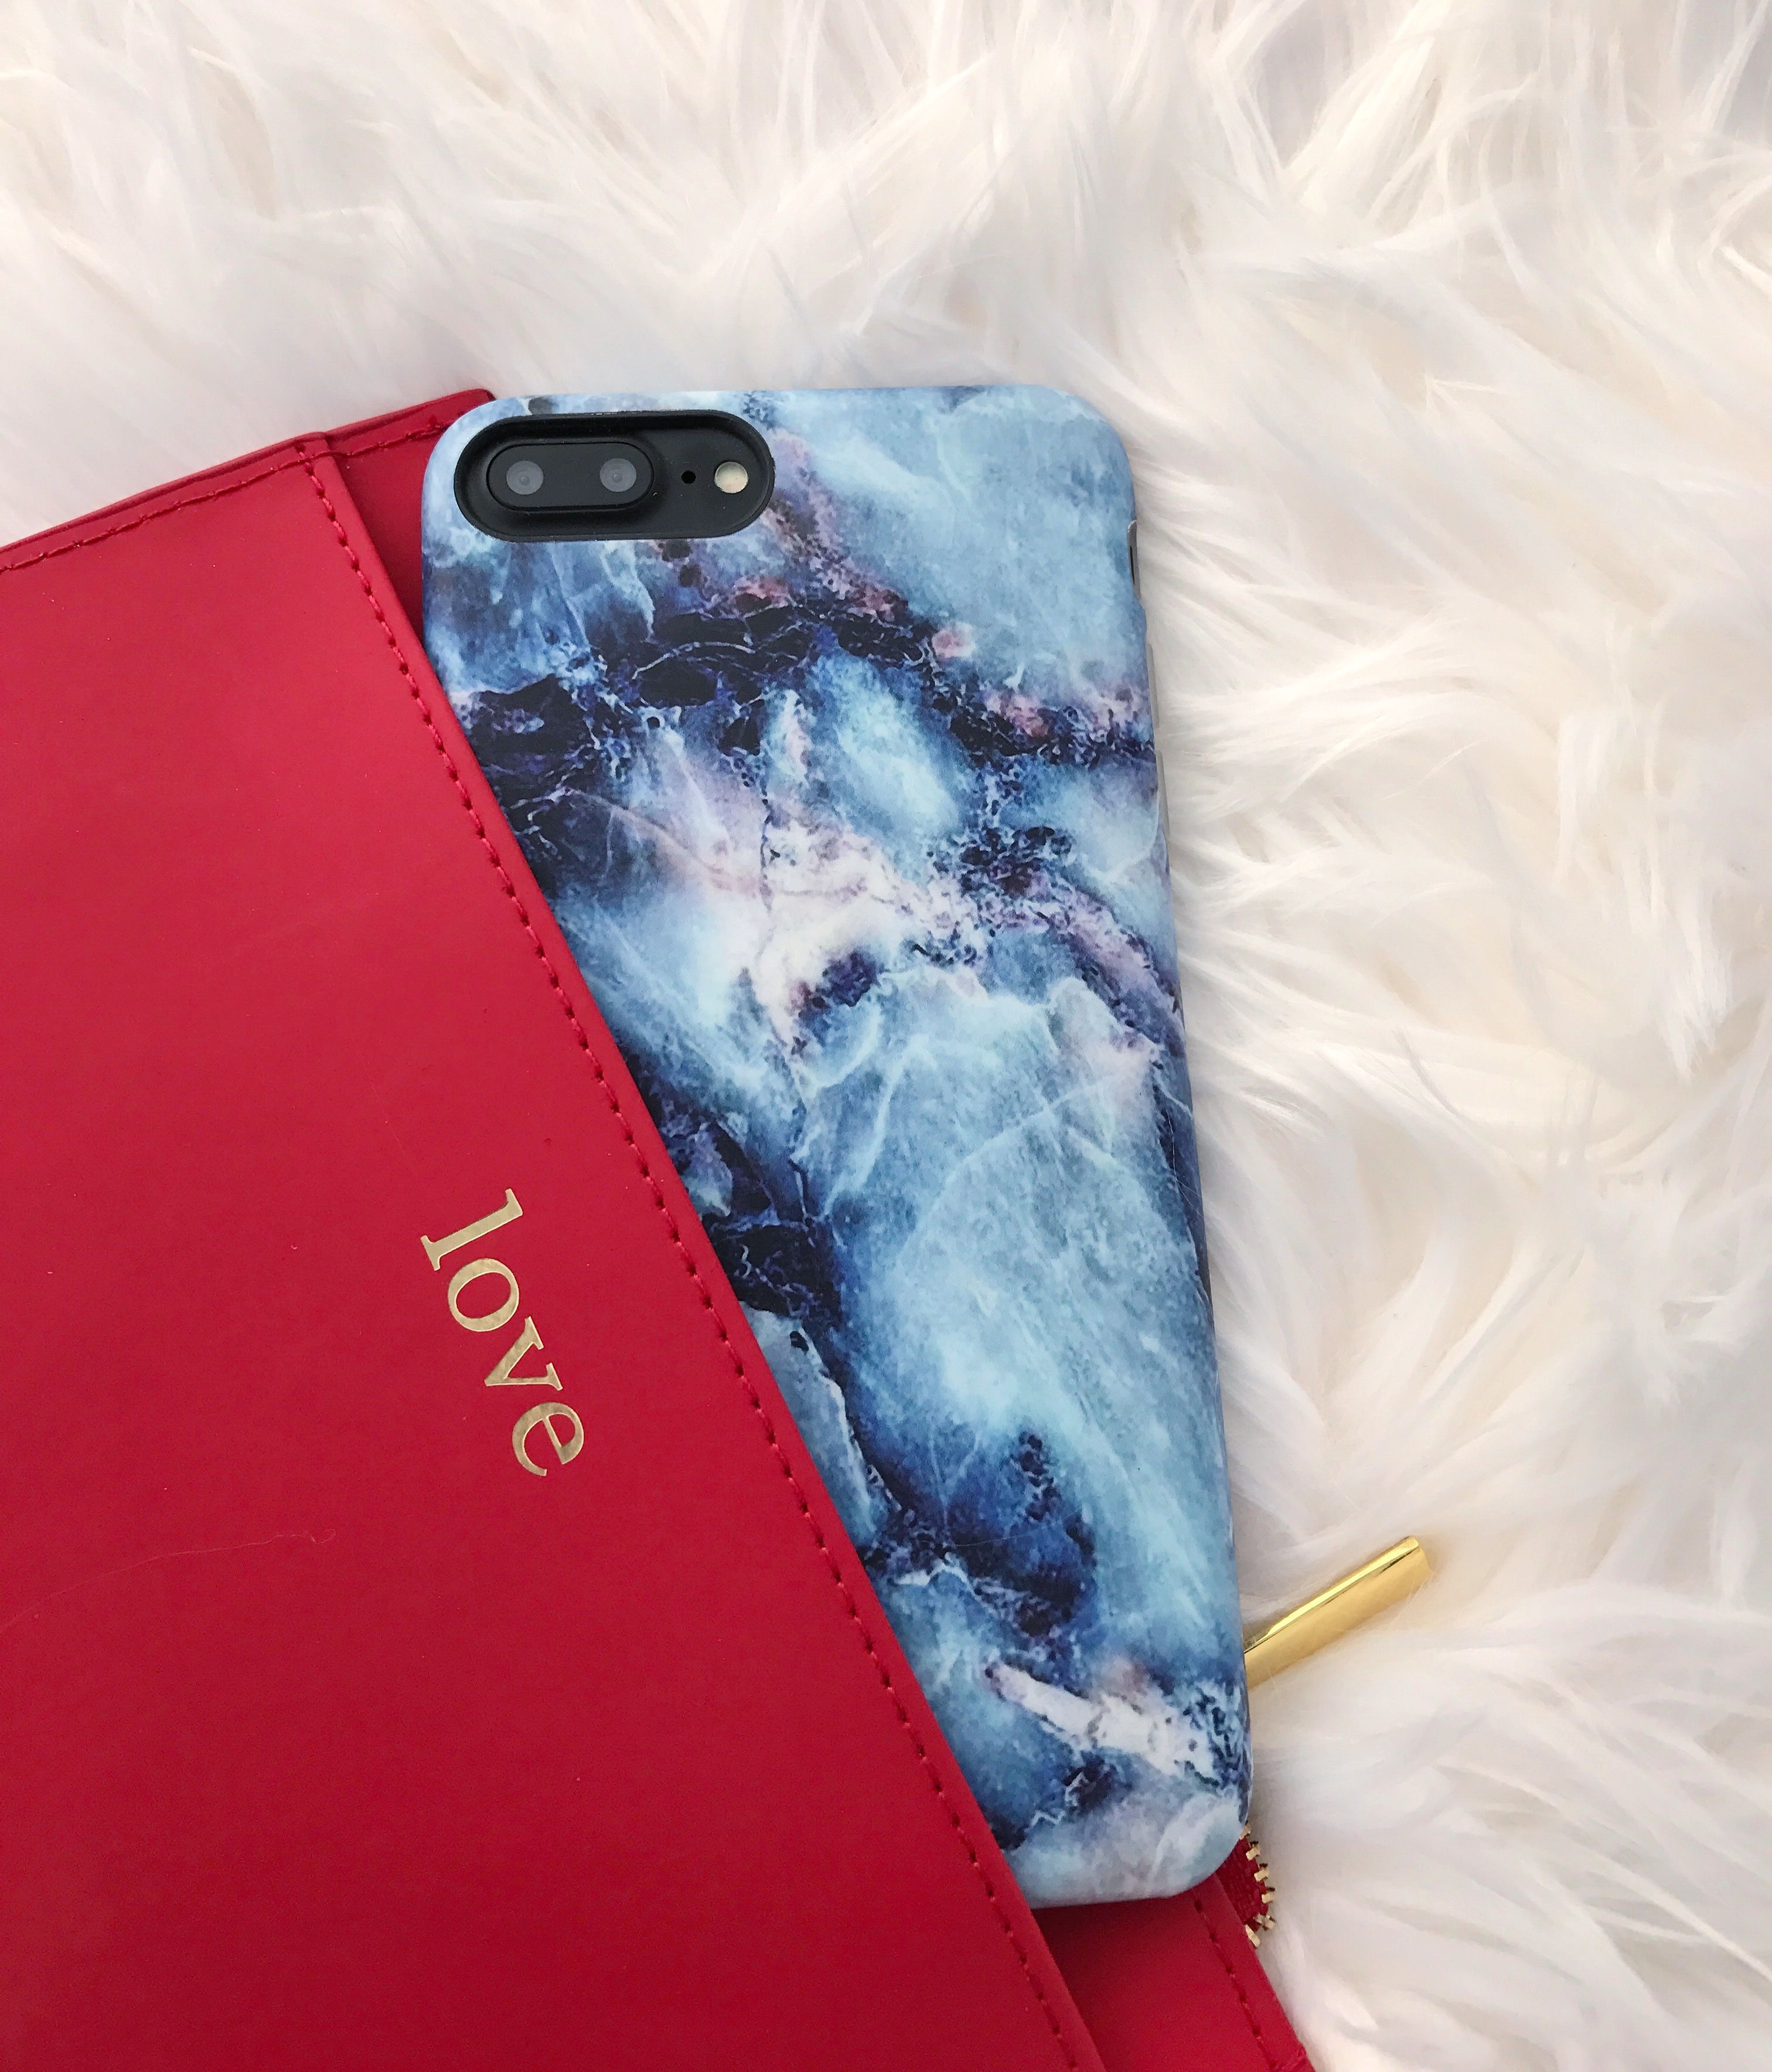 Geode for iphone 7 iphone 7 plus from elemental cases